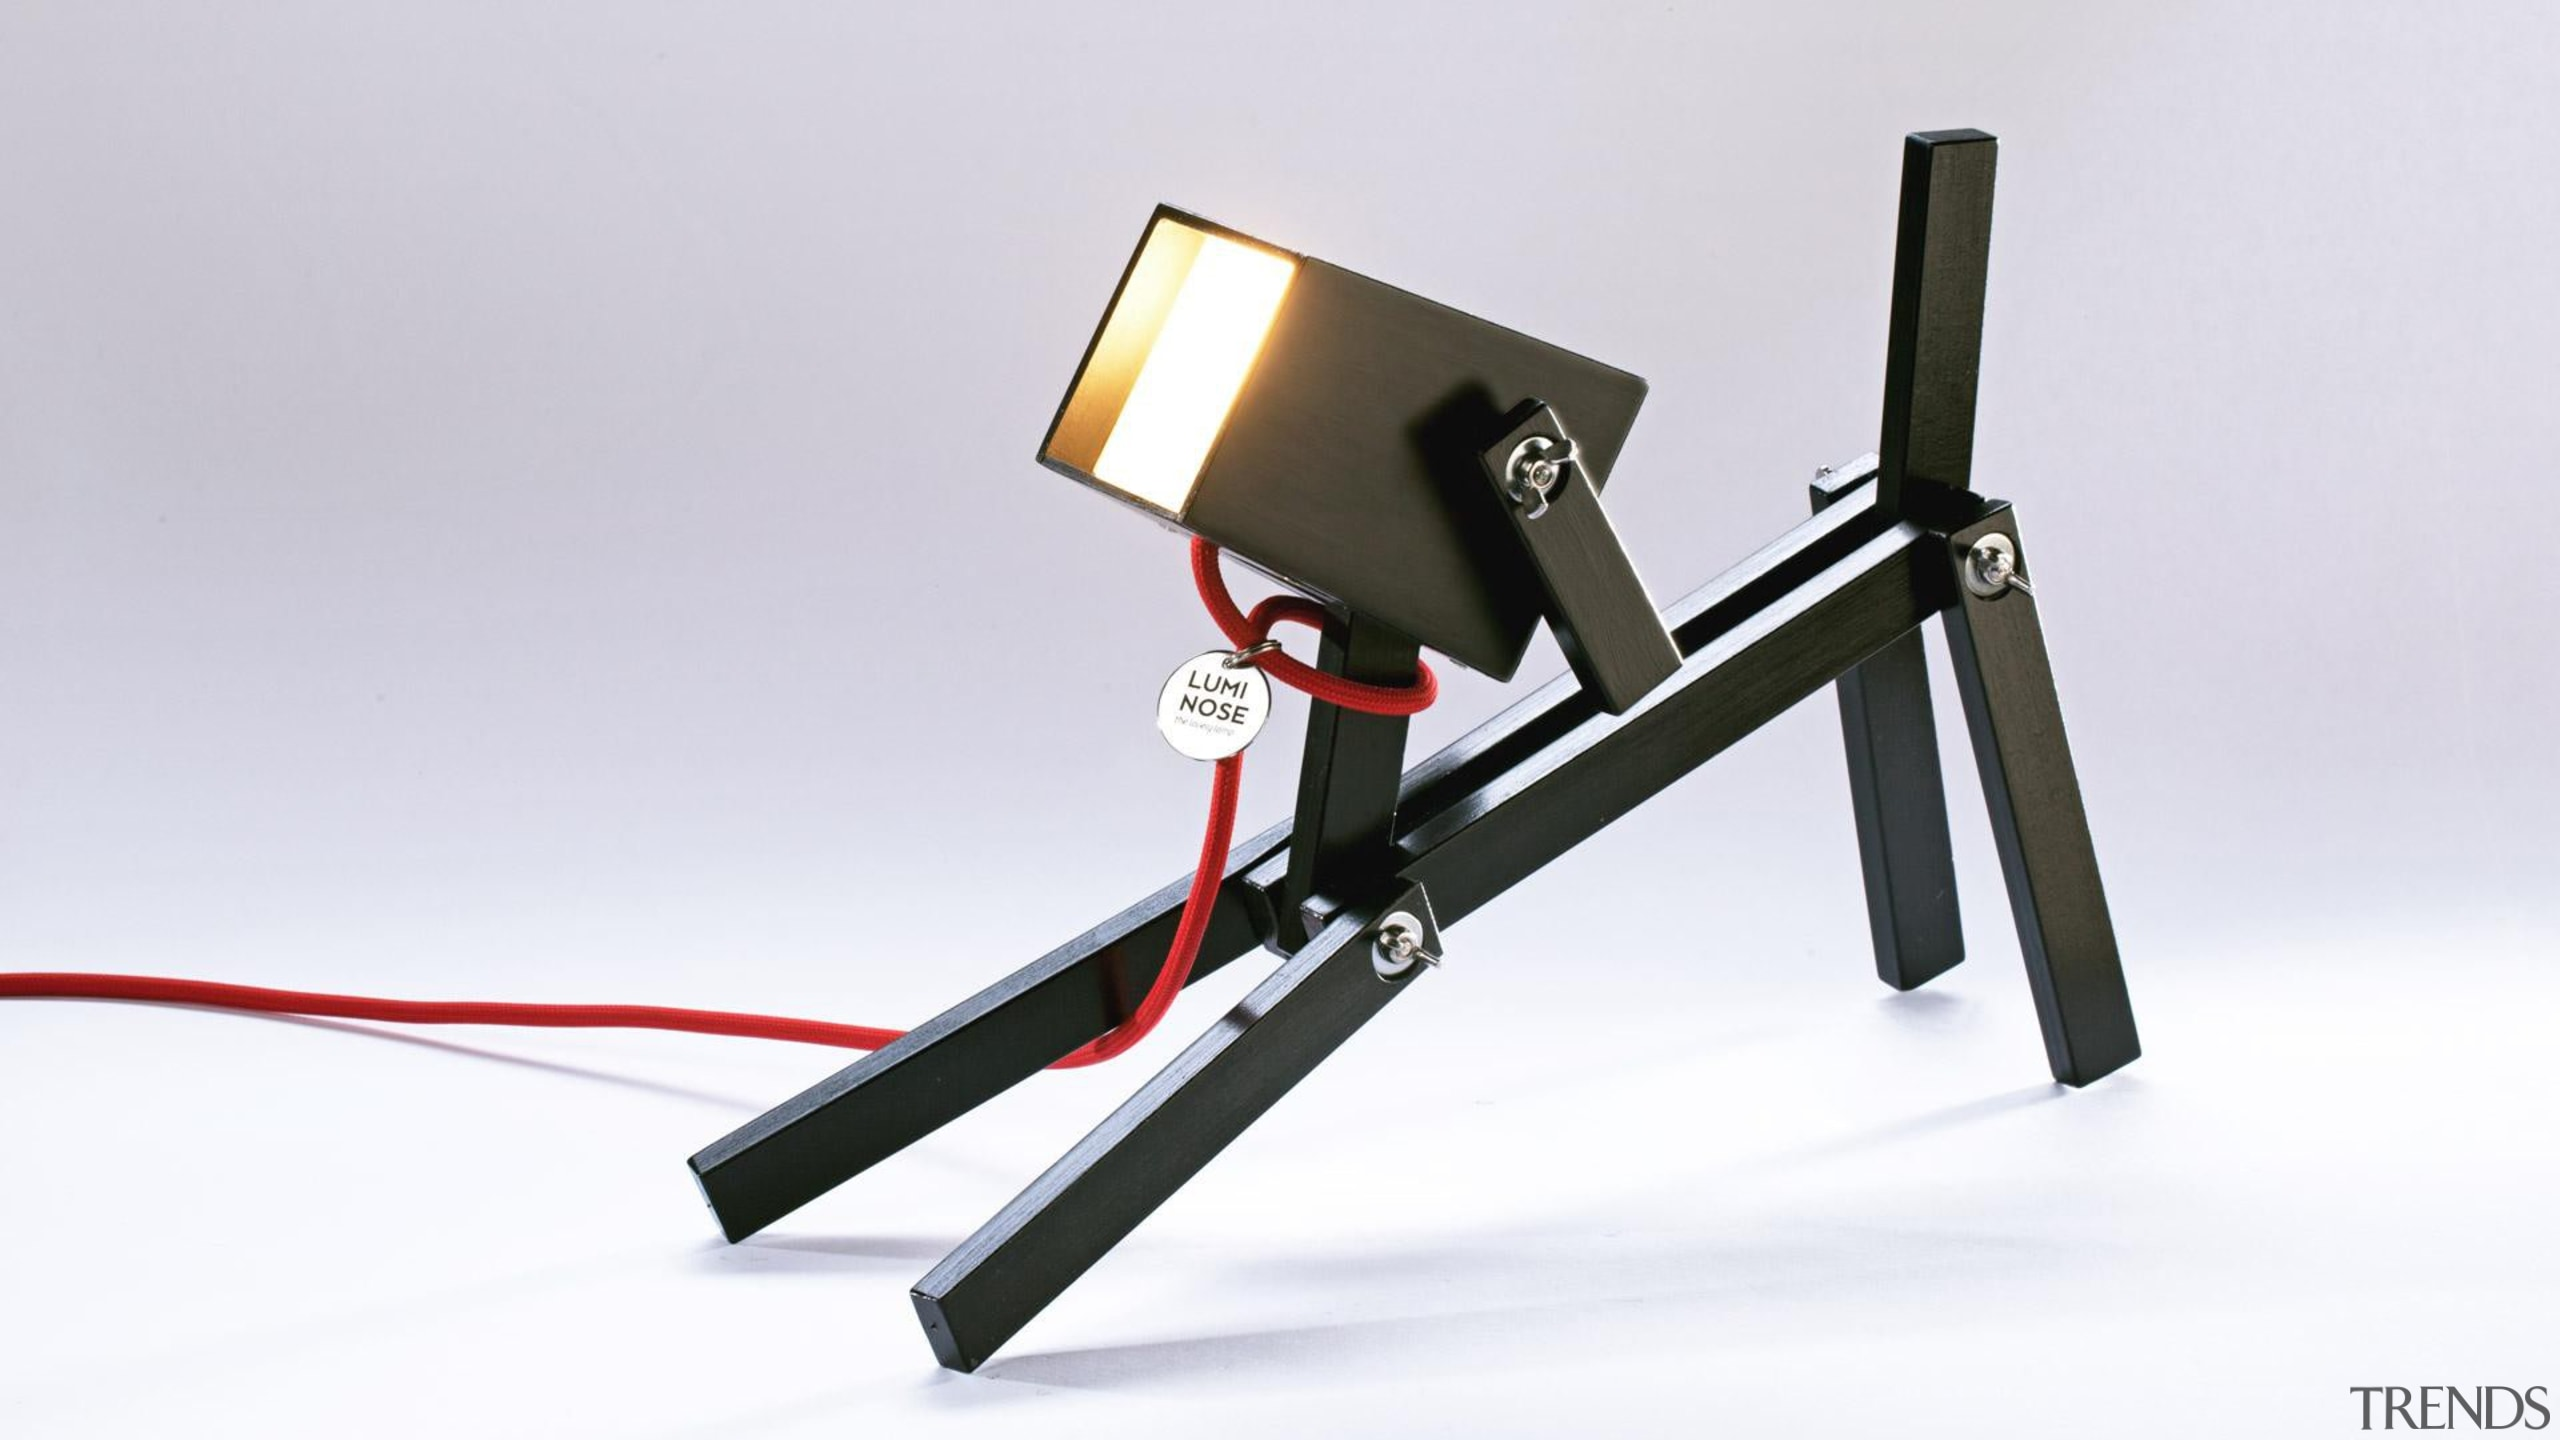 Luminose is a new project by Budapest-based designers camera accessory, product, product design, technology, white